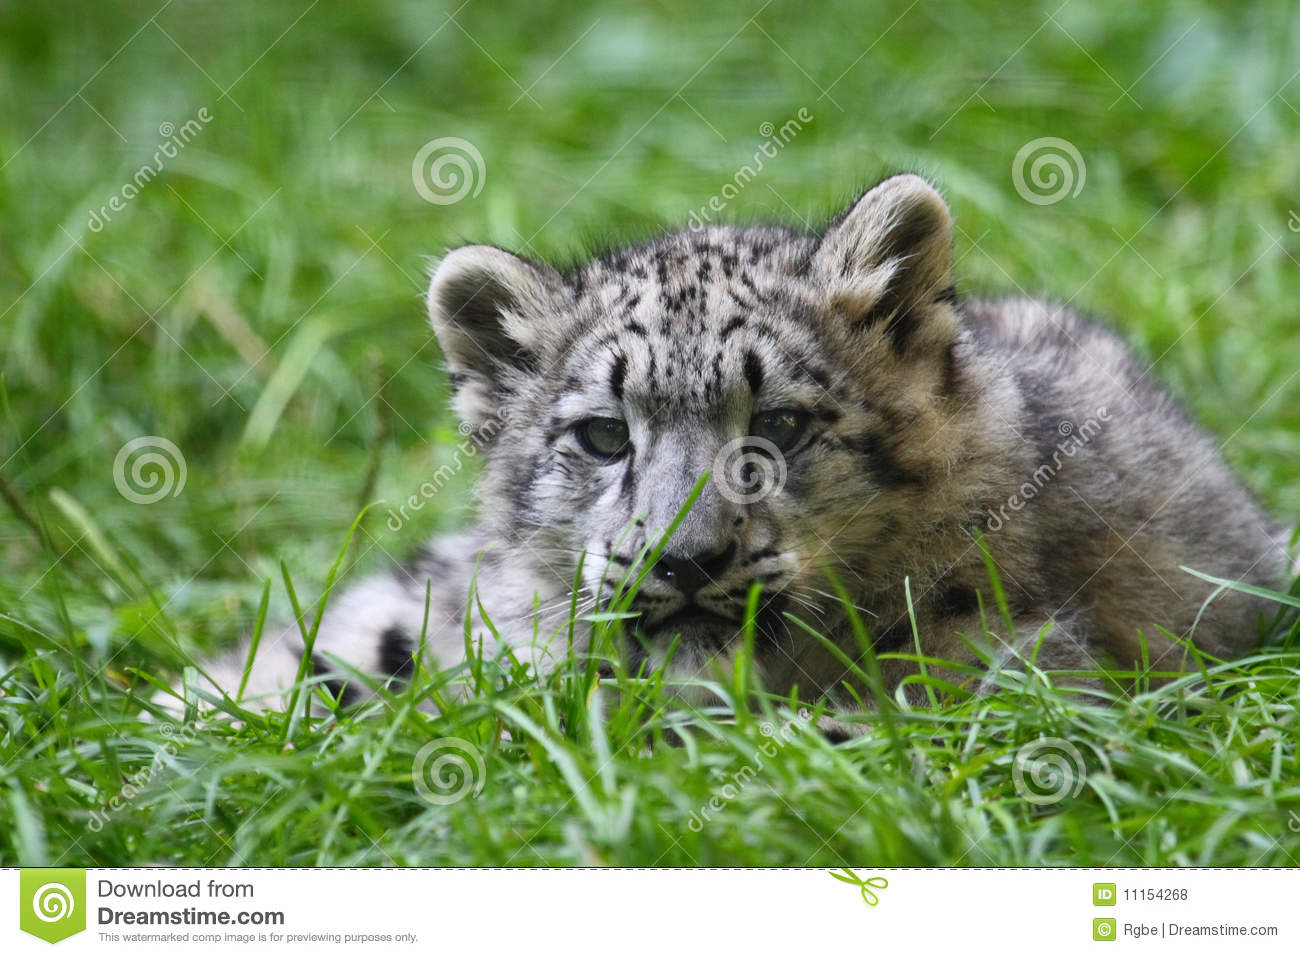 Baby Snow Leopard This Is Finding Sth Its Interested In Royalty Free